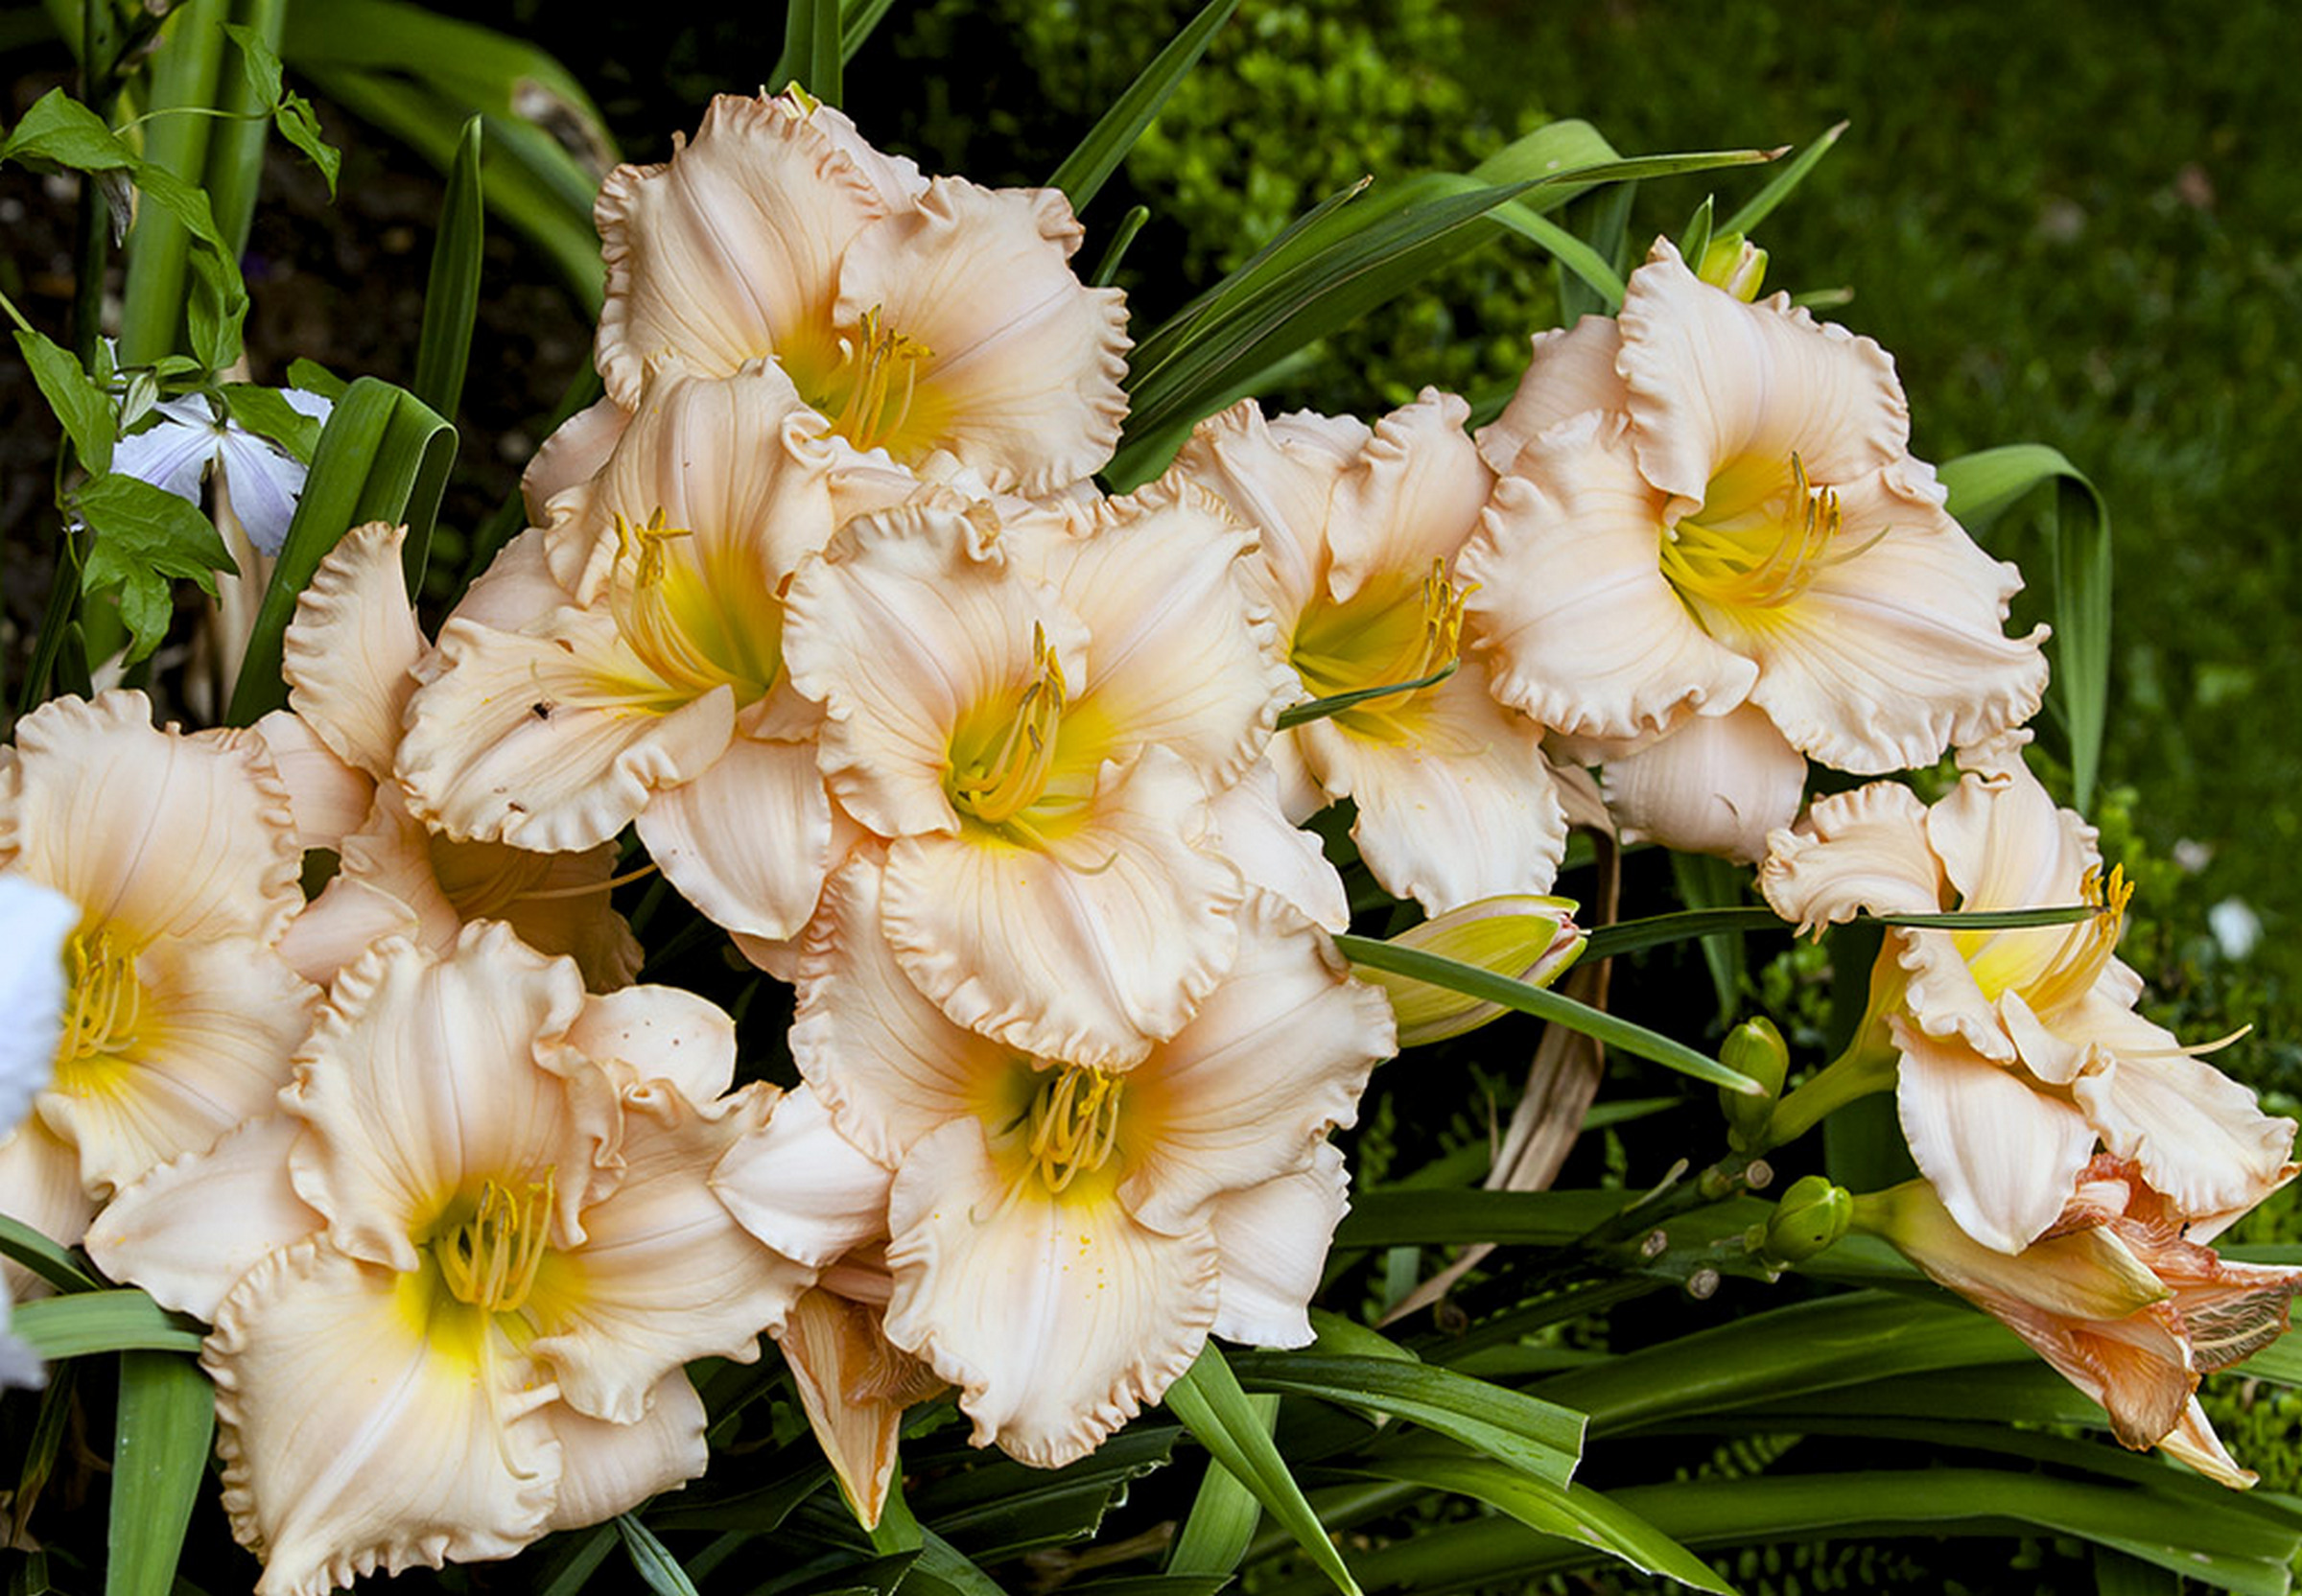 Hemerocallis-Barbara-mitchell 2013_001.jpg